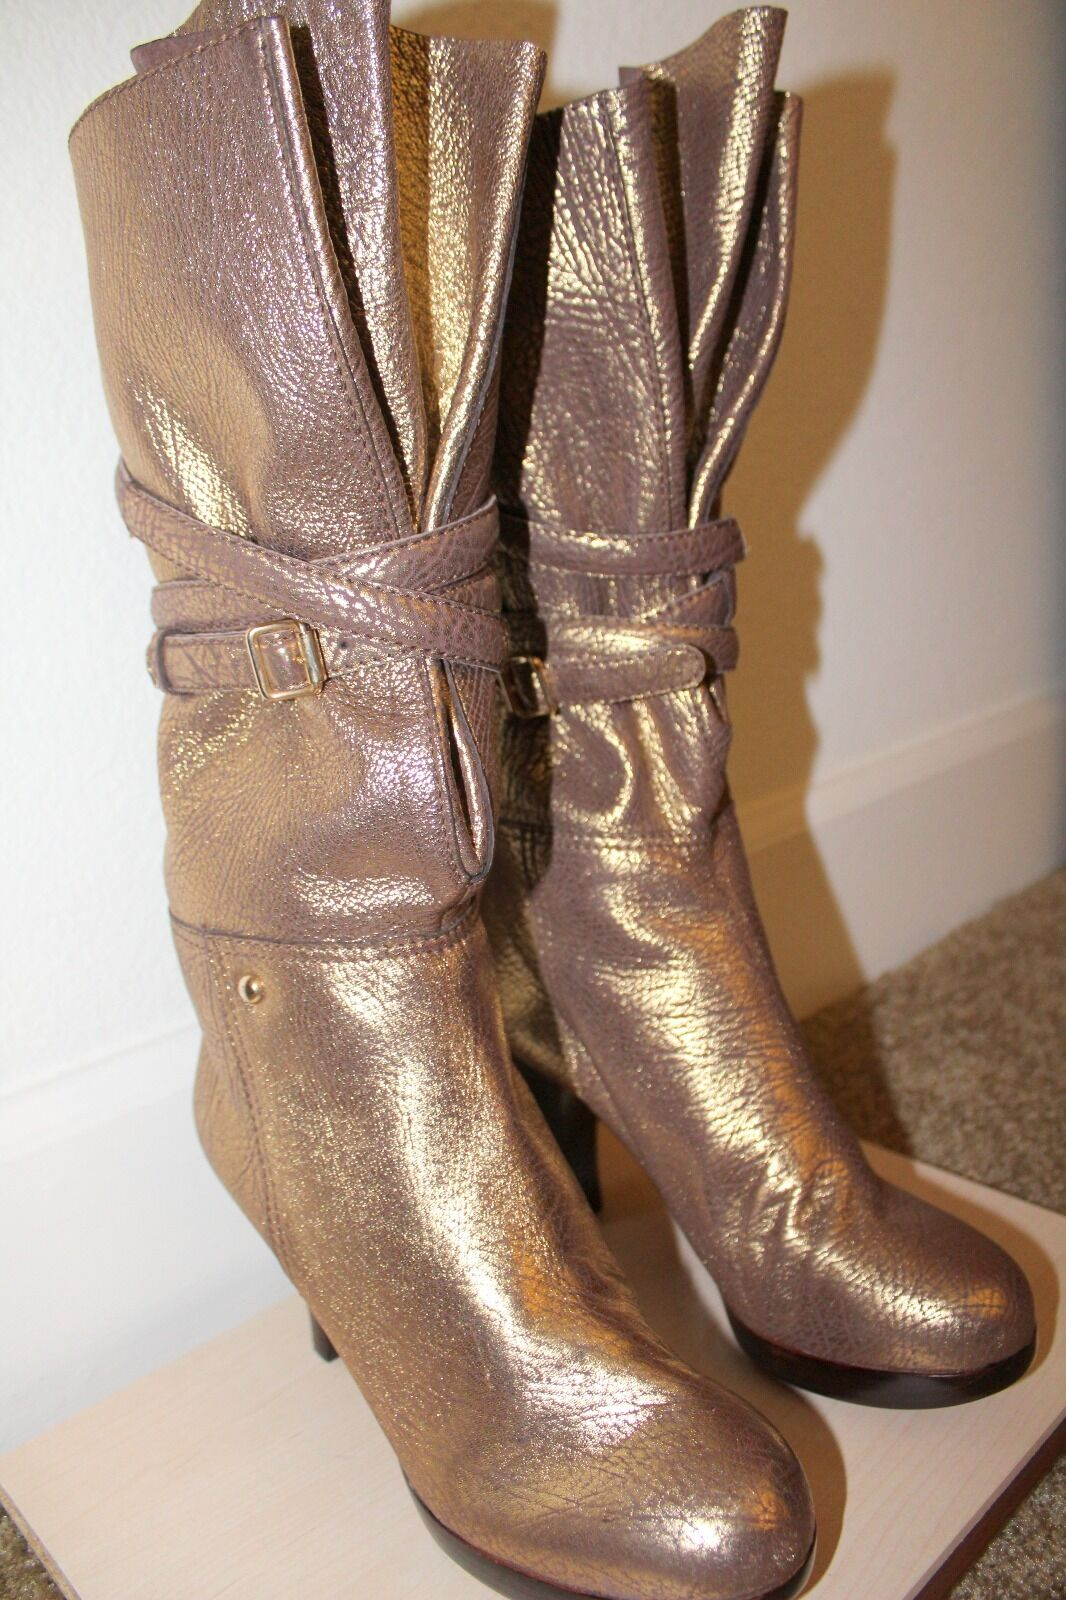 7 For All Mankind Simone Gold Boots Size 8 NEW